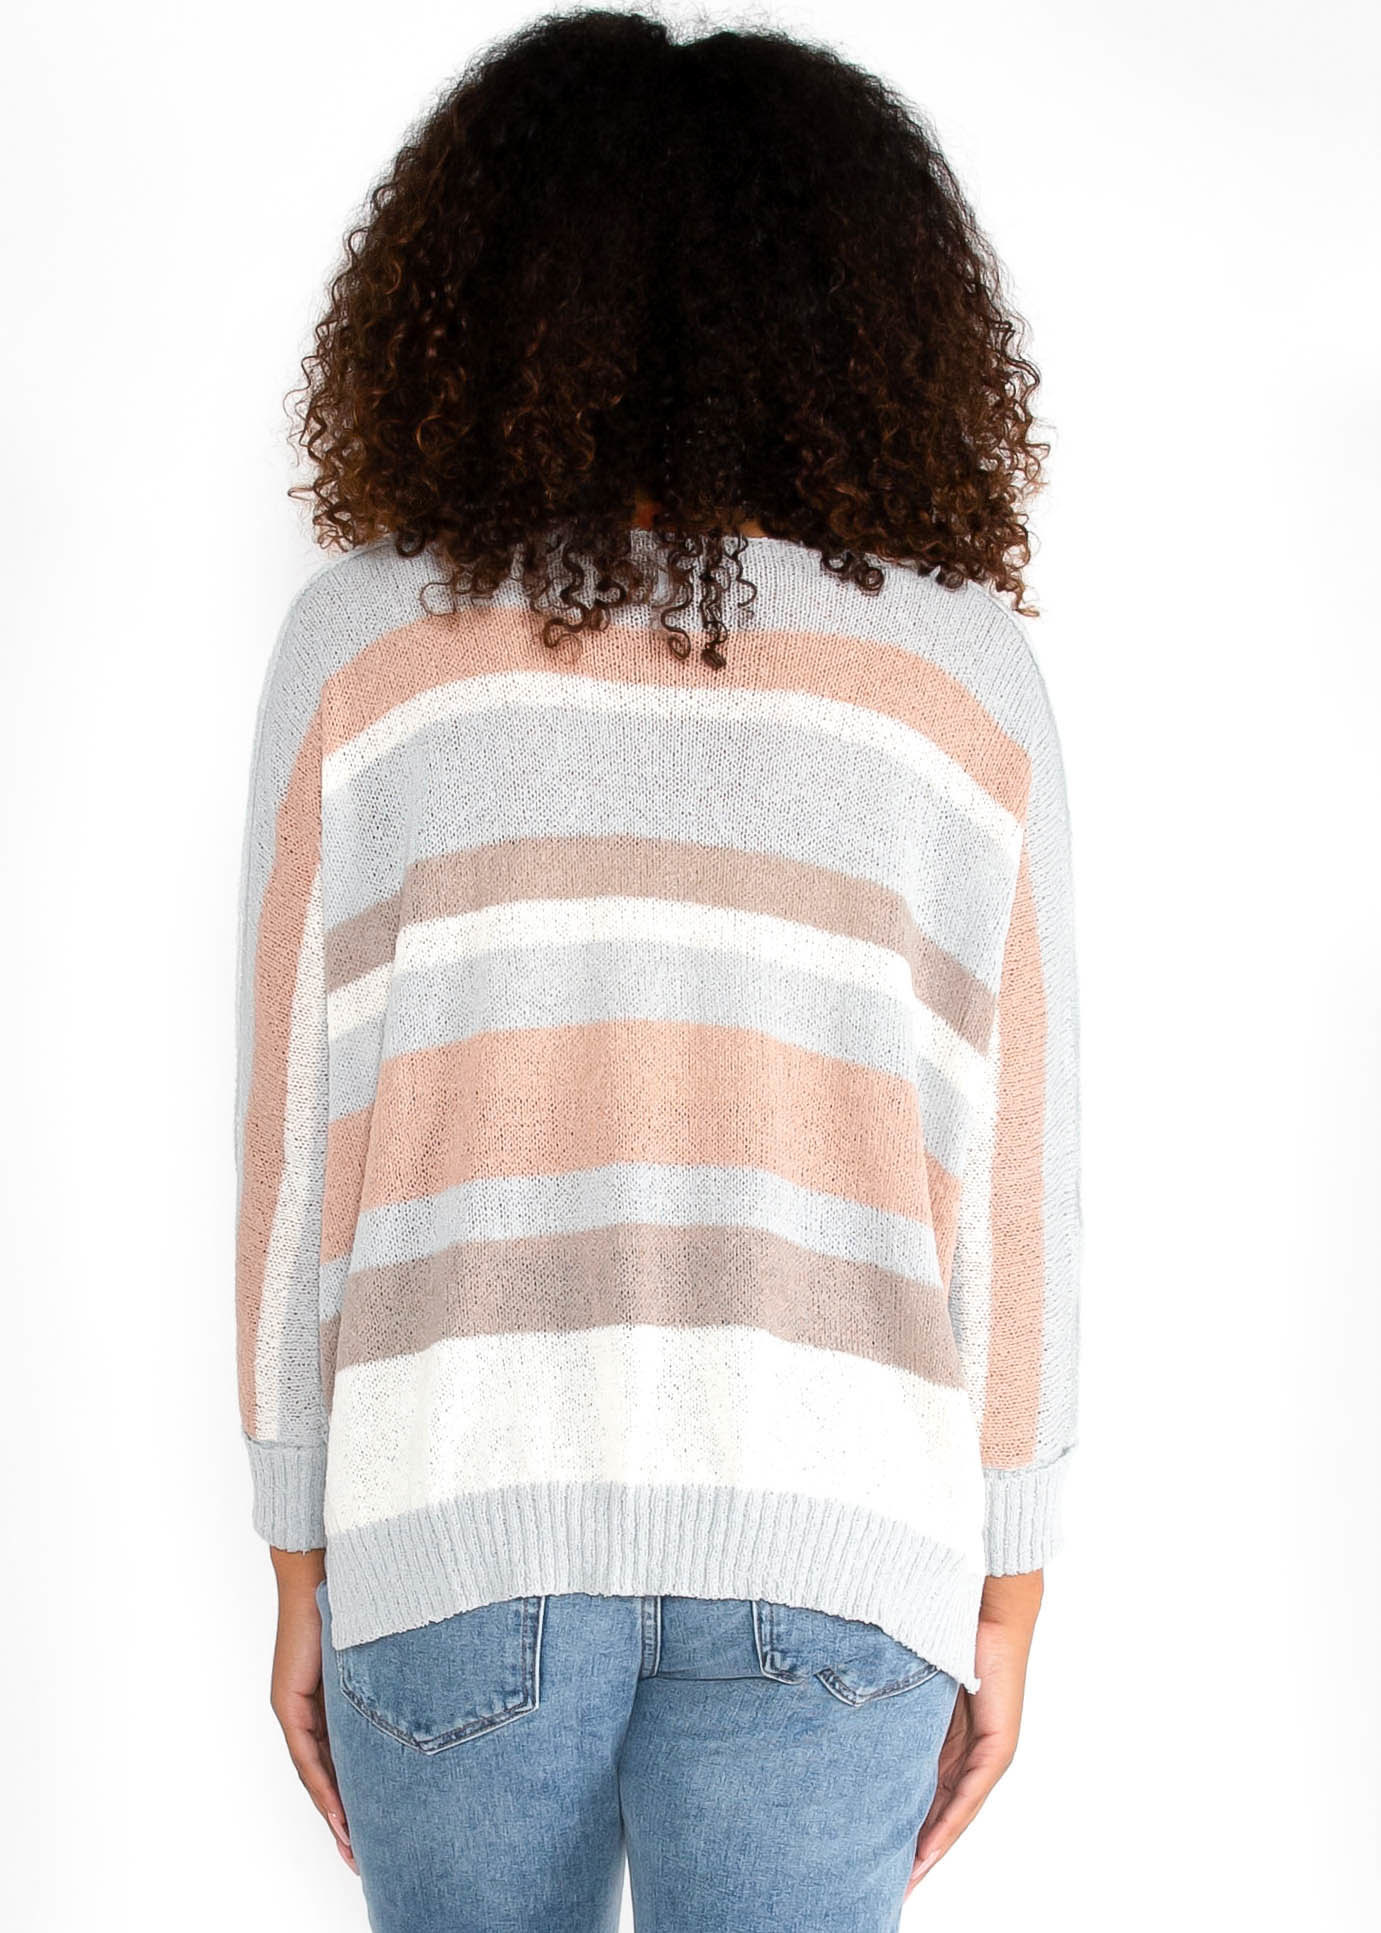 HOLD ME CLOSE STRIPED SWEATER